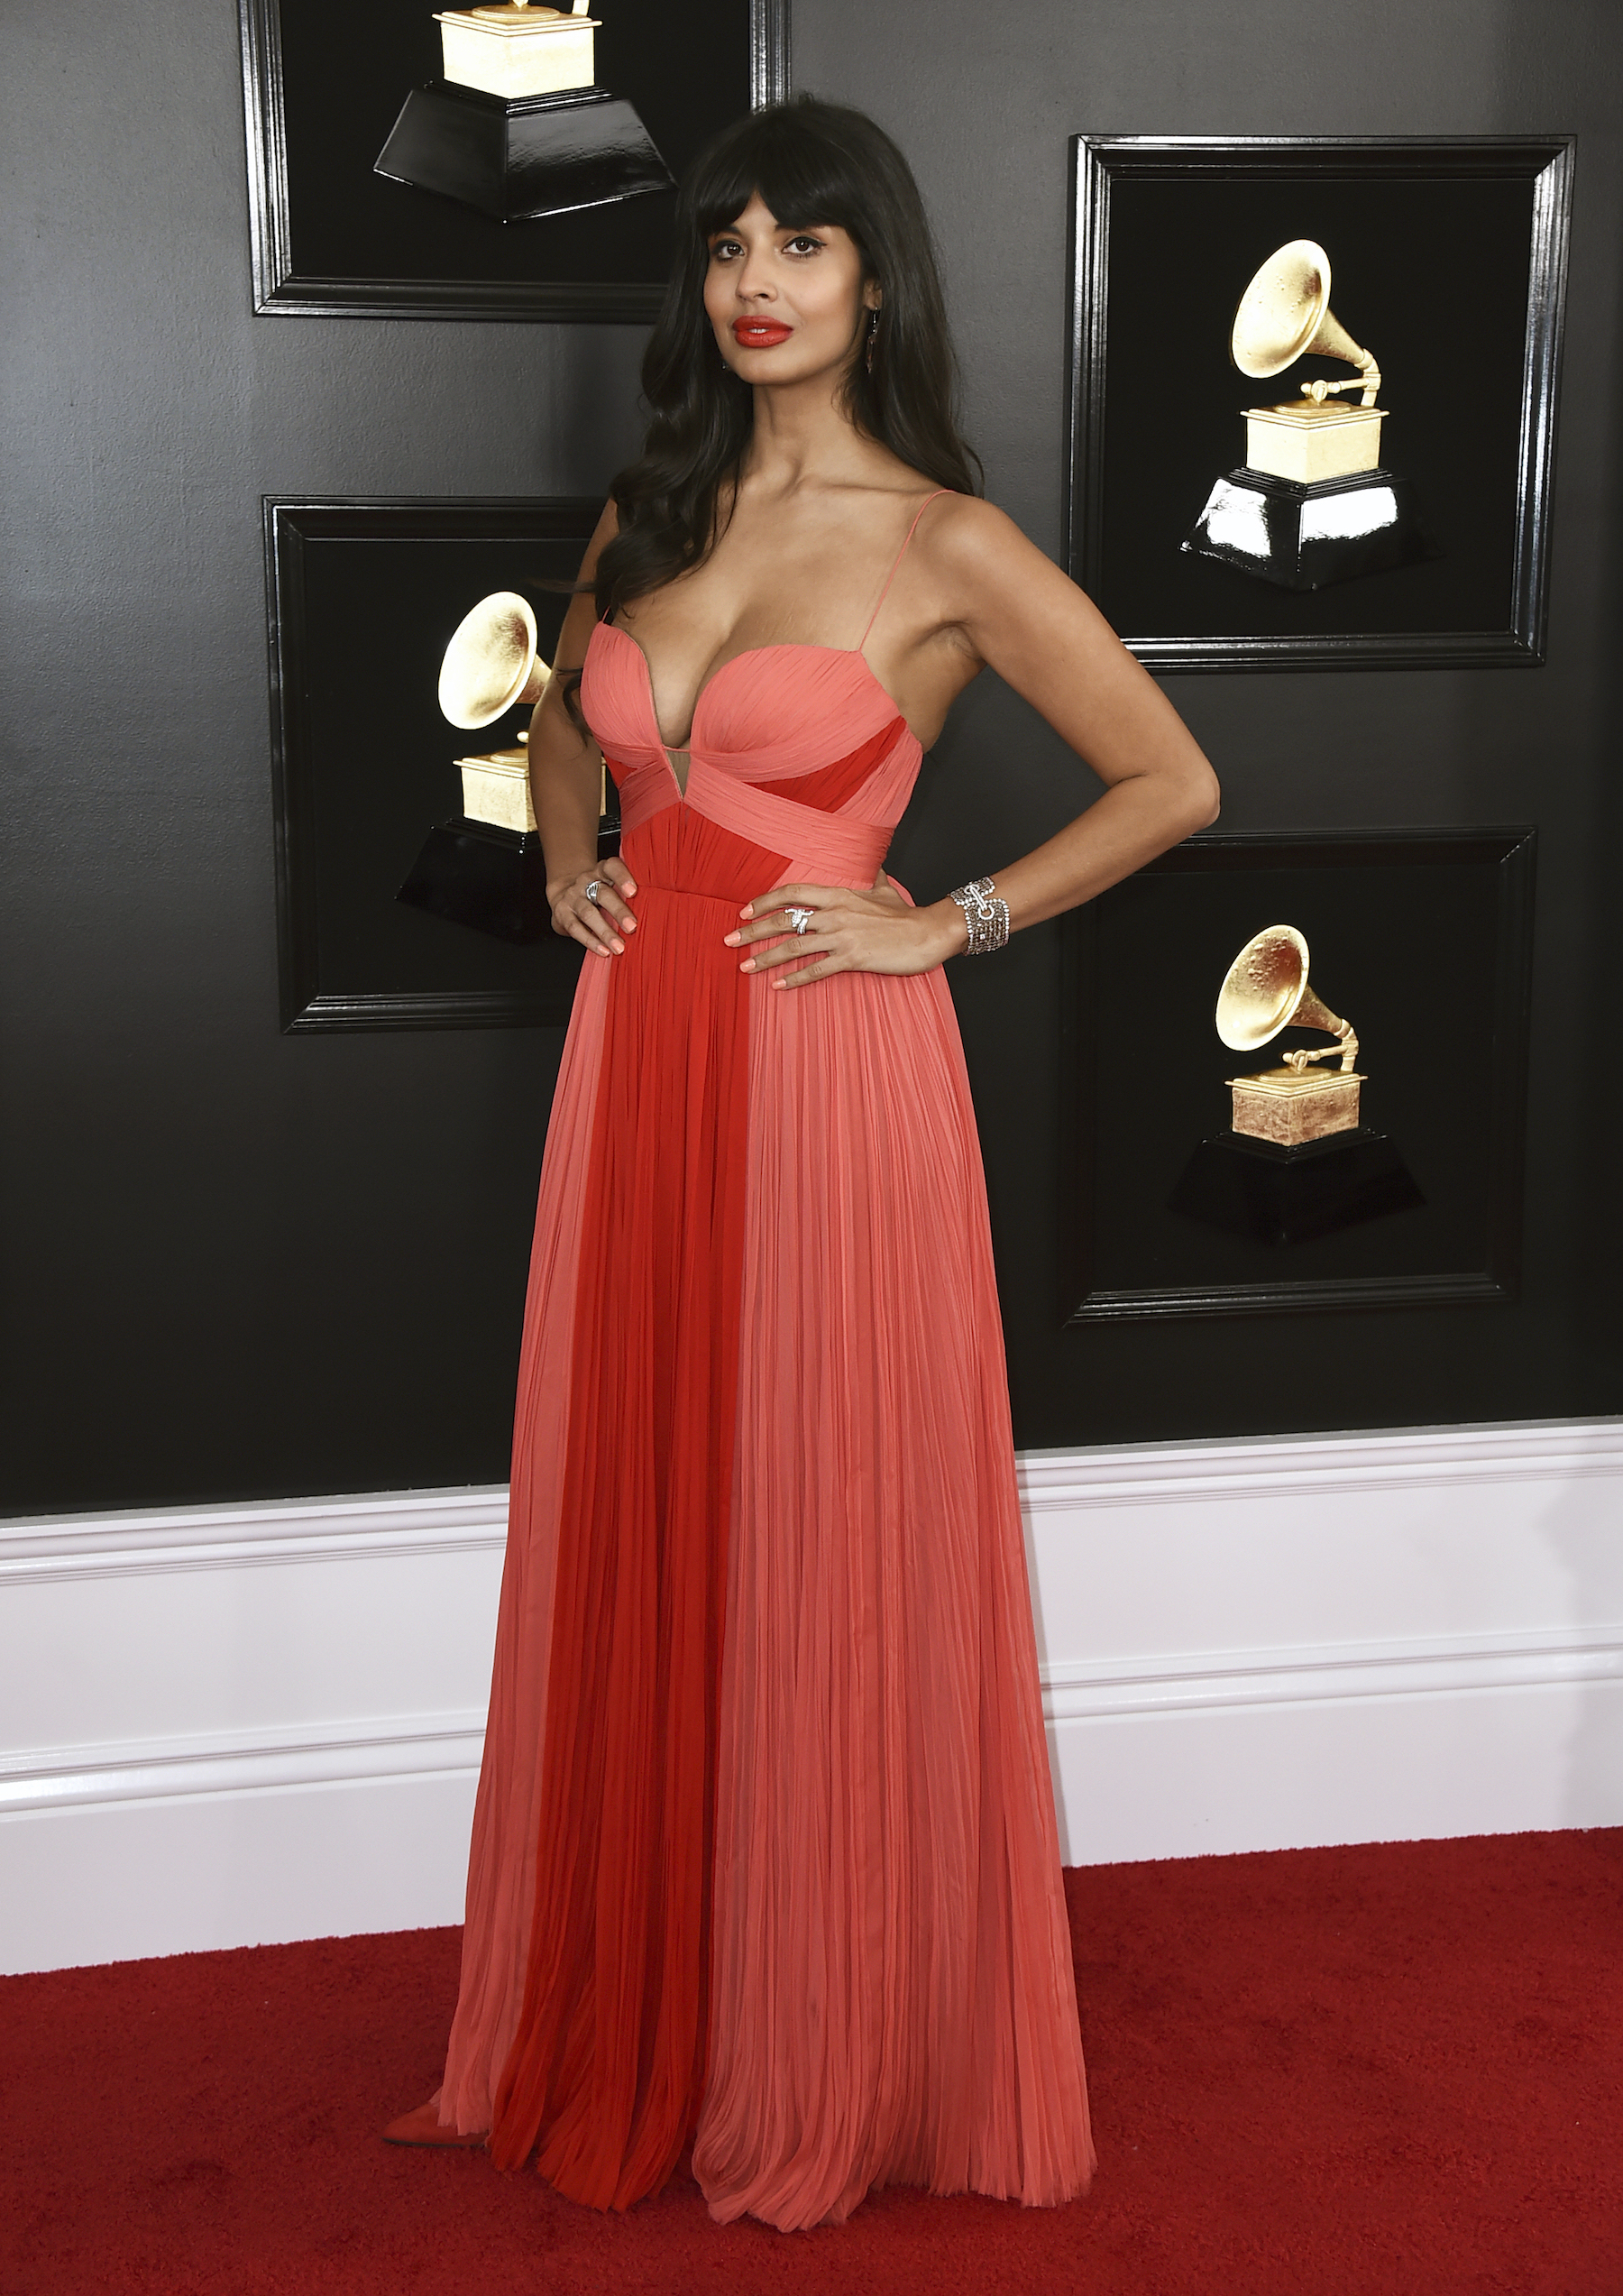 <div class='meta'><div class='origin-logo' data-origin='AP'></div><span class='caption-text' data-credit='Jordan Strauss/Invision/AP'>Jameela Jamil arrives at the 61st annual Grammy Awards at the Staples Center on Sunday, Feb. 10, 2019, in Los Angeles.</span></div>